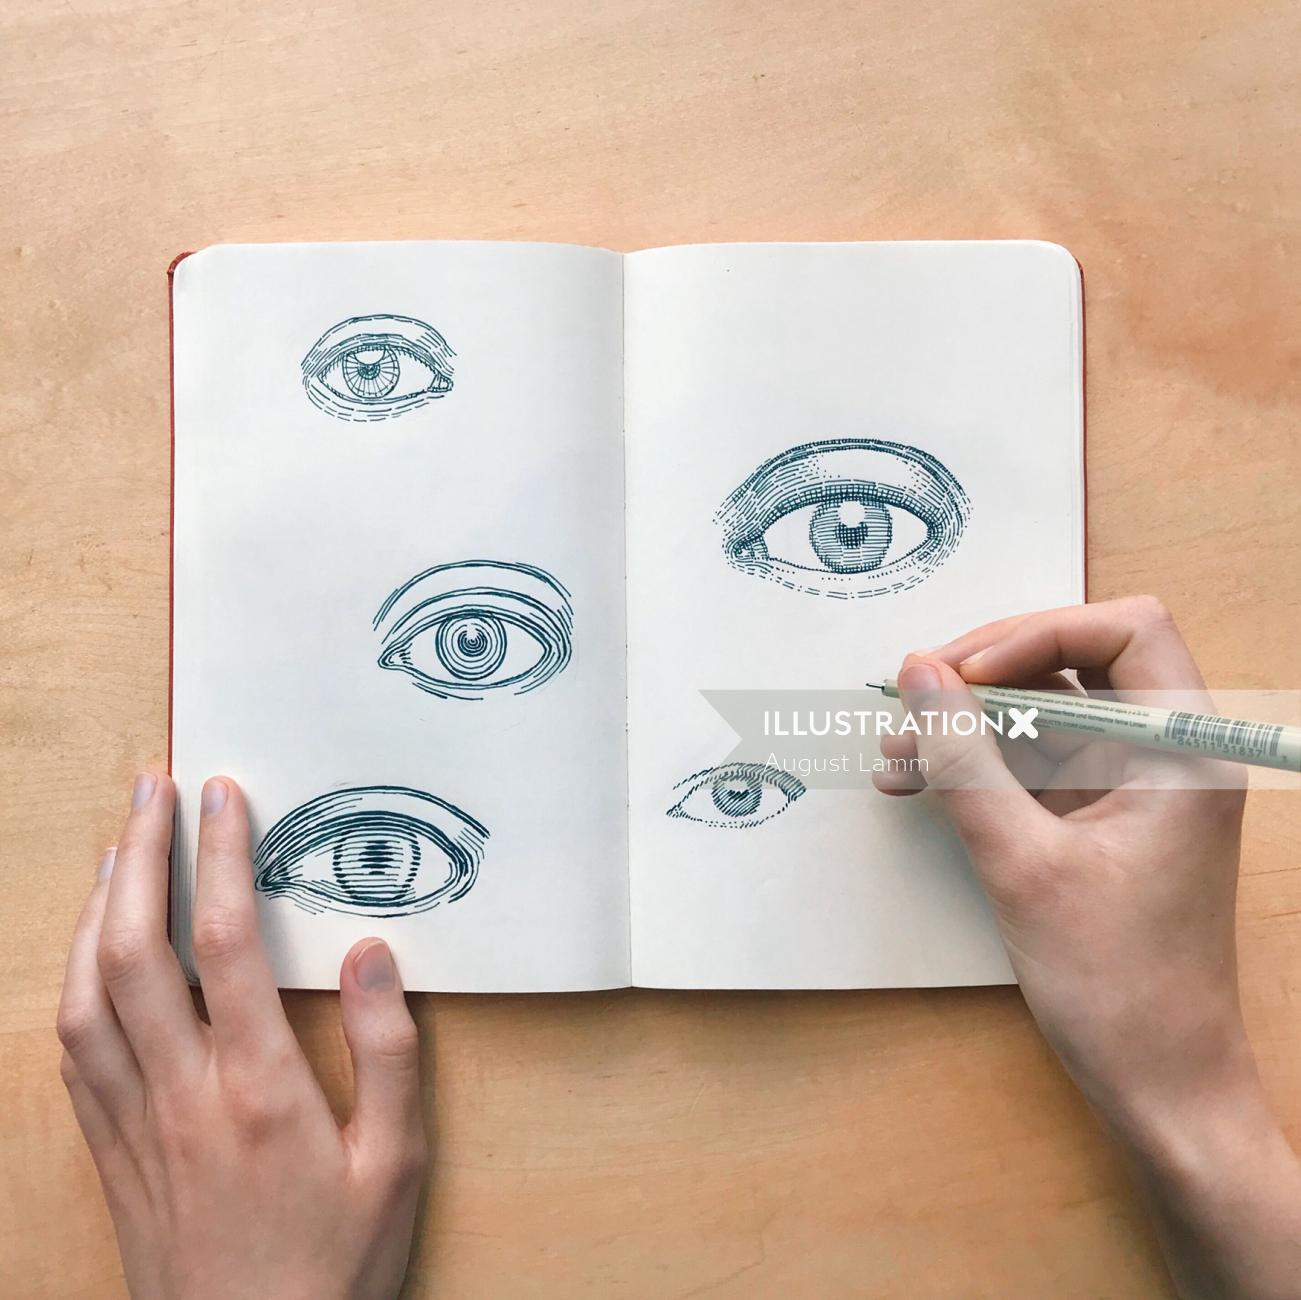 Live event drawing of different eyes by August Lamm